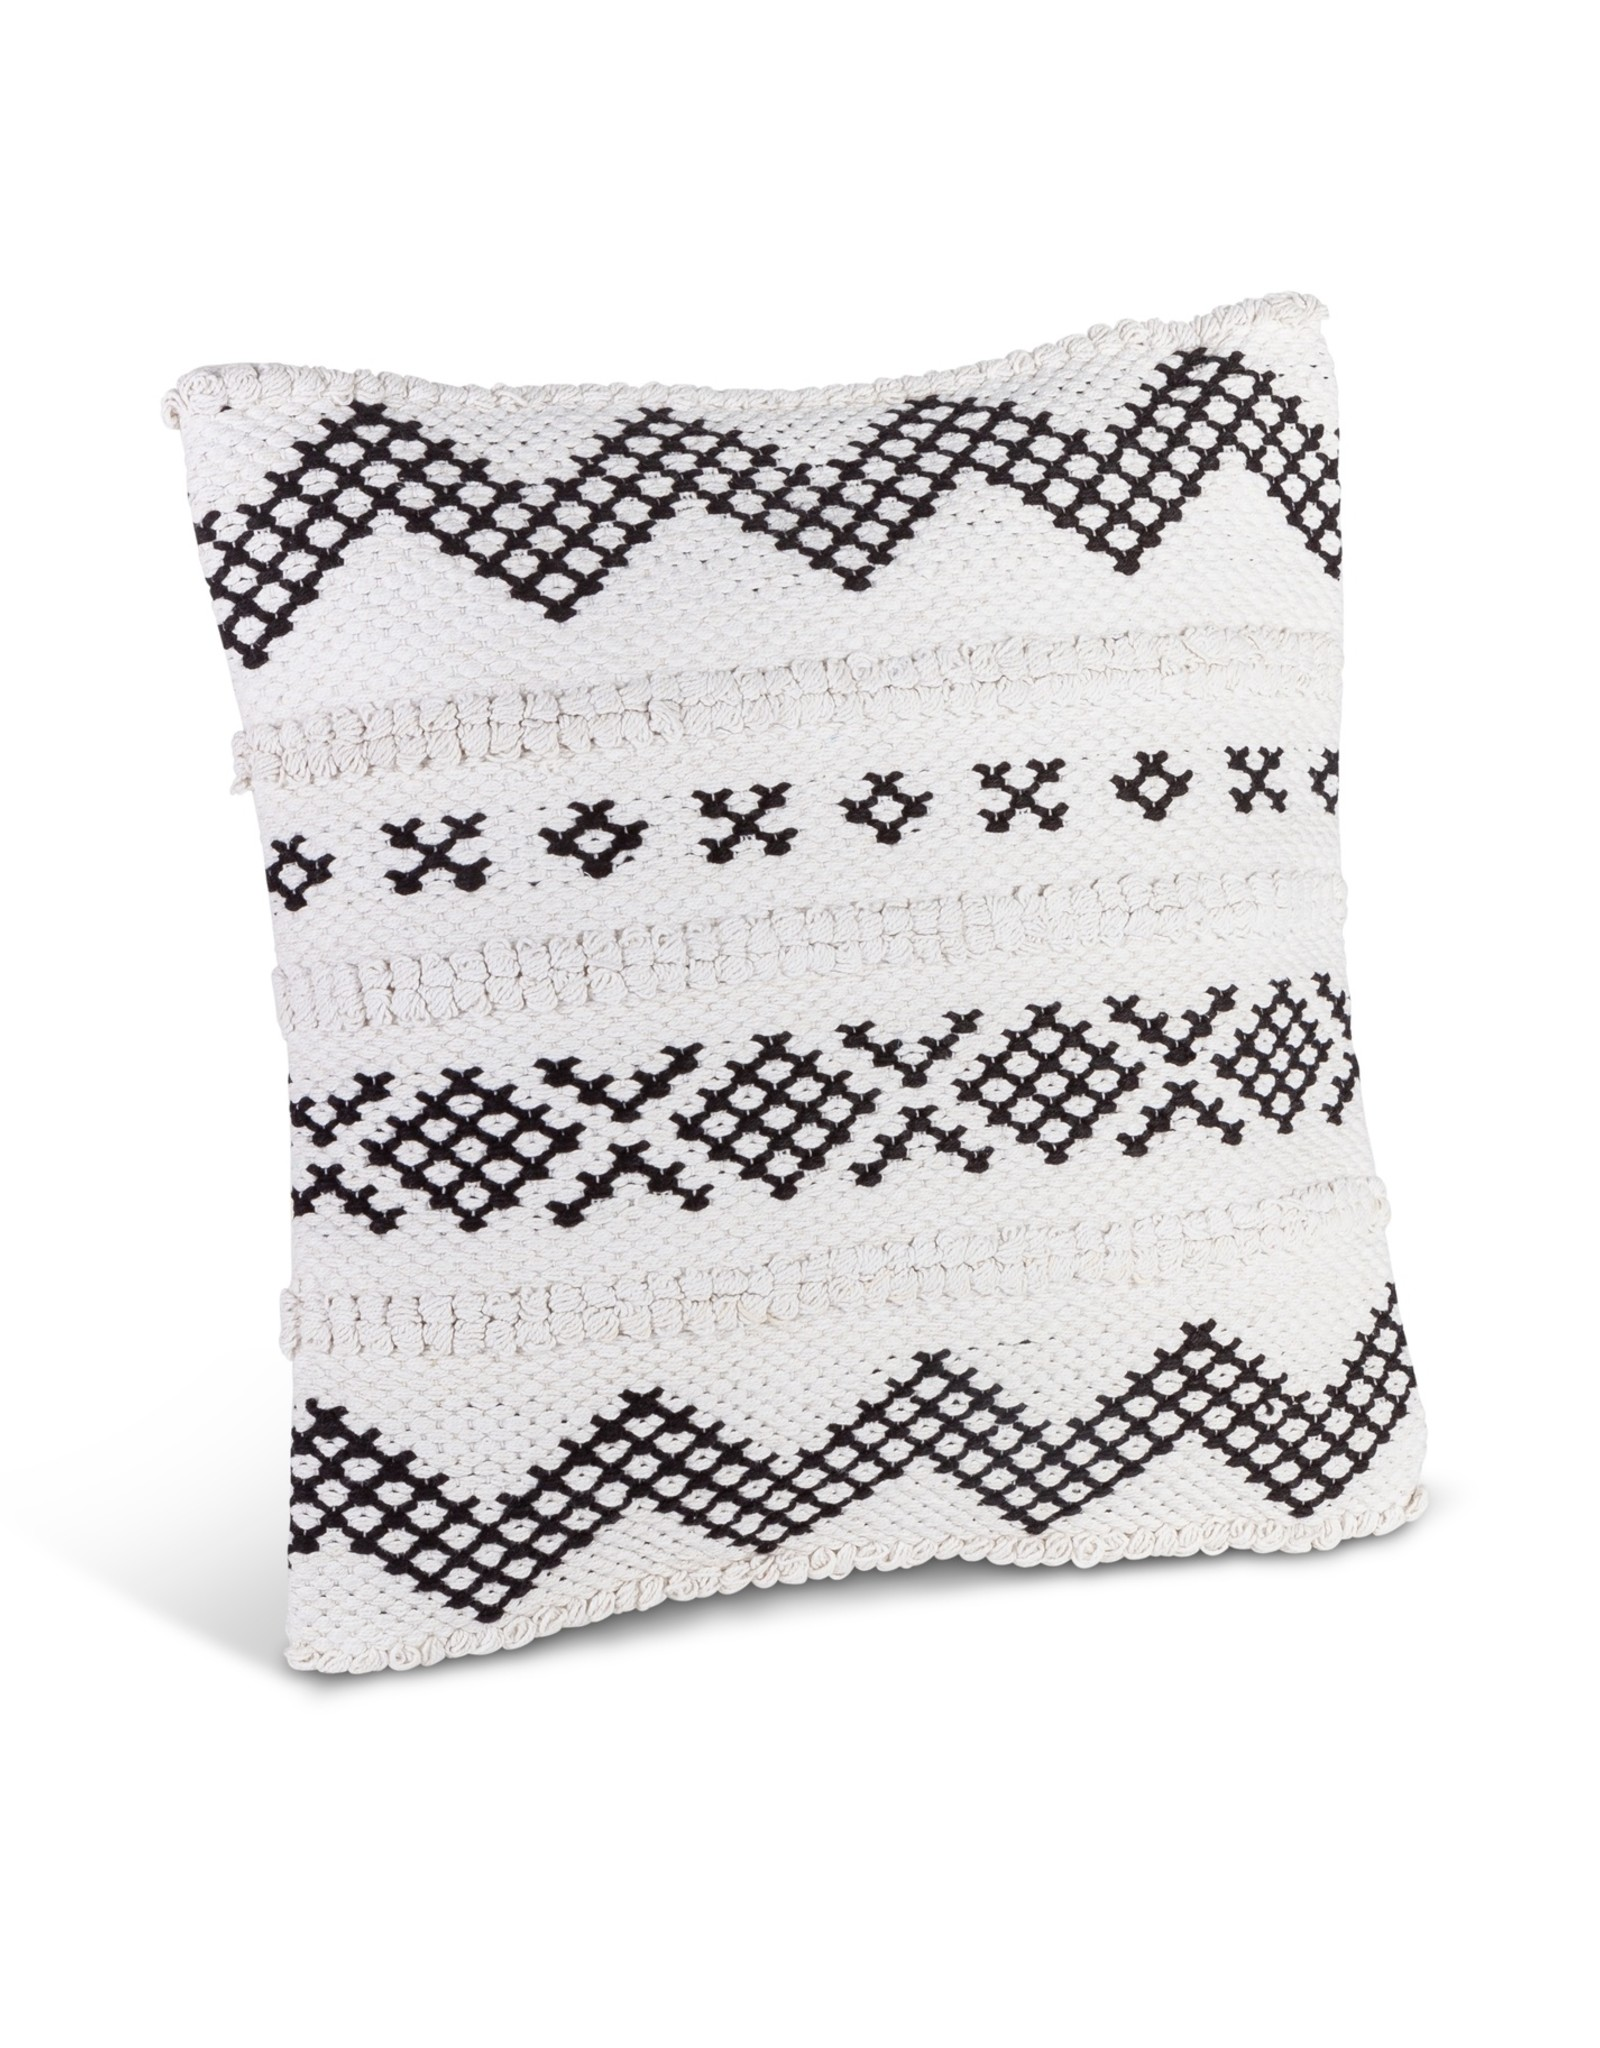 The Gerson Companies White with Black Cotton Woven Square Pillow